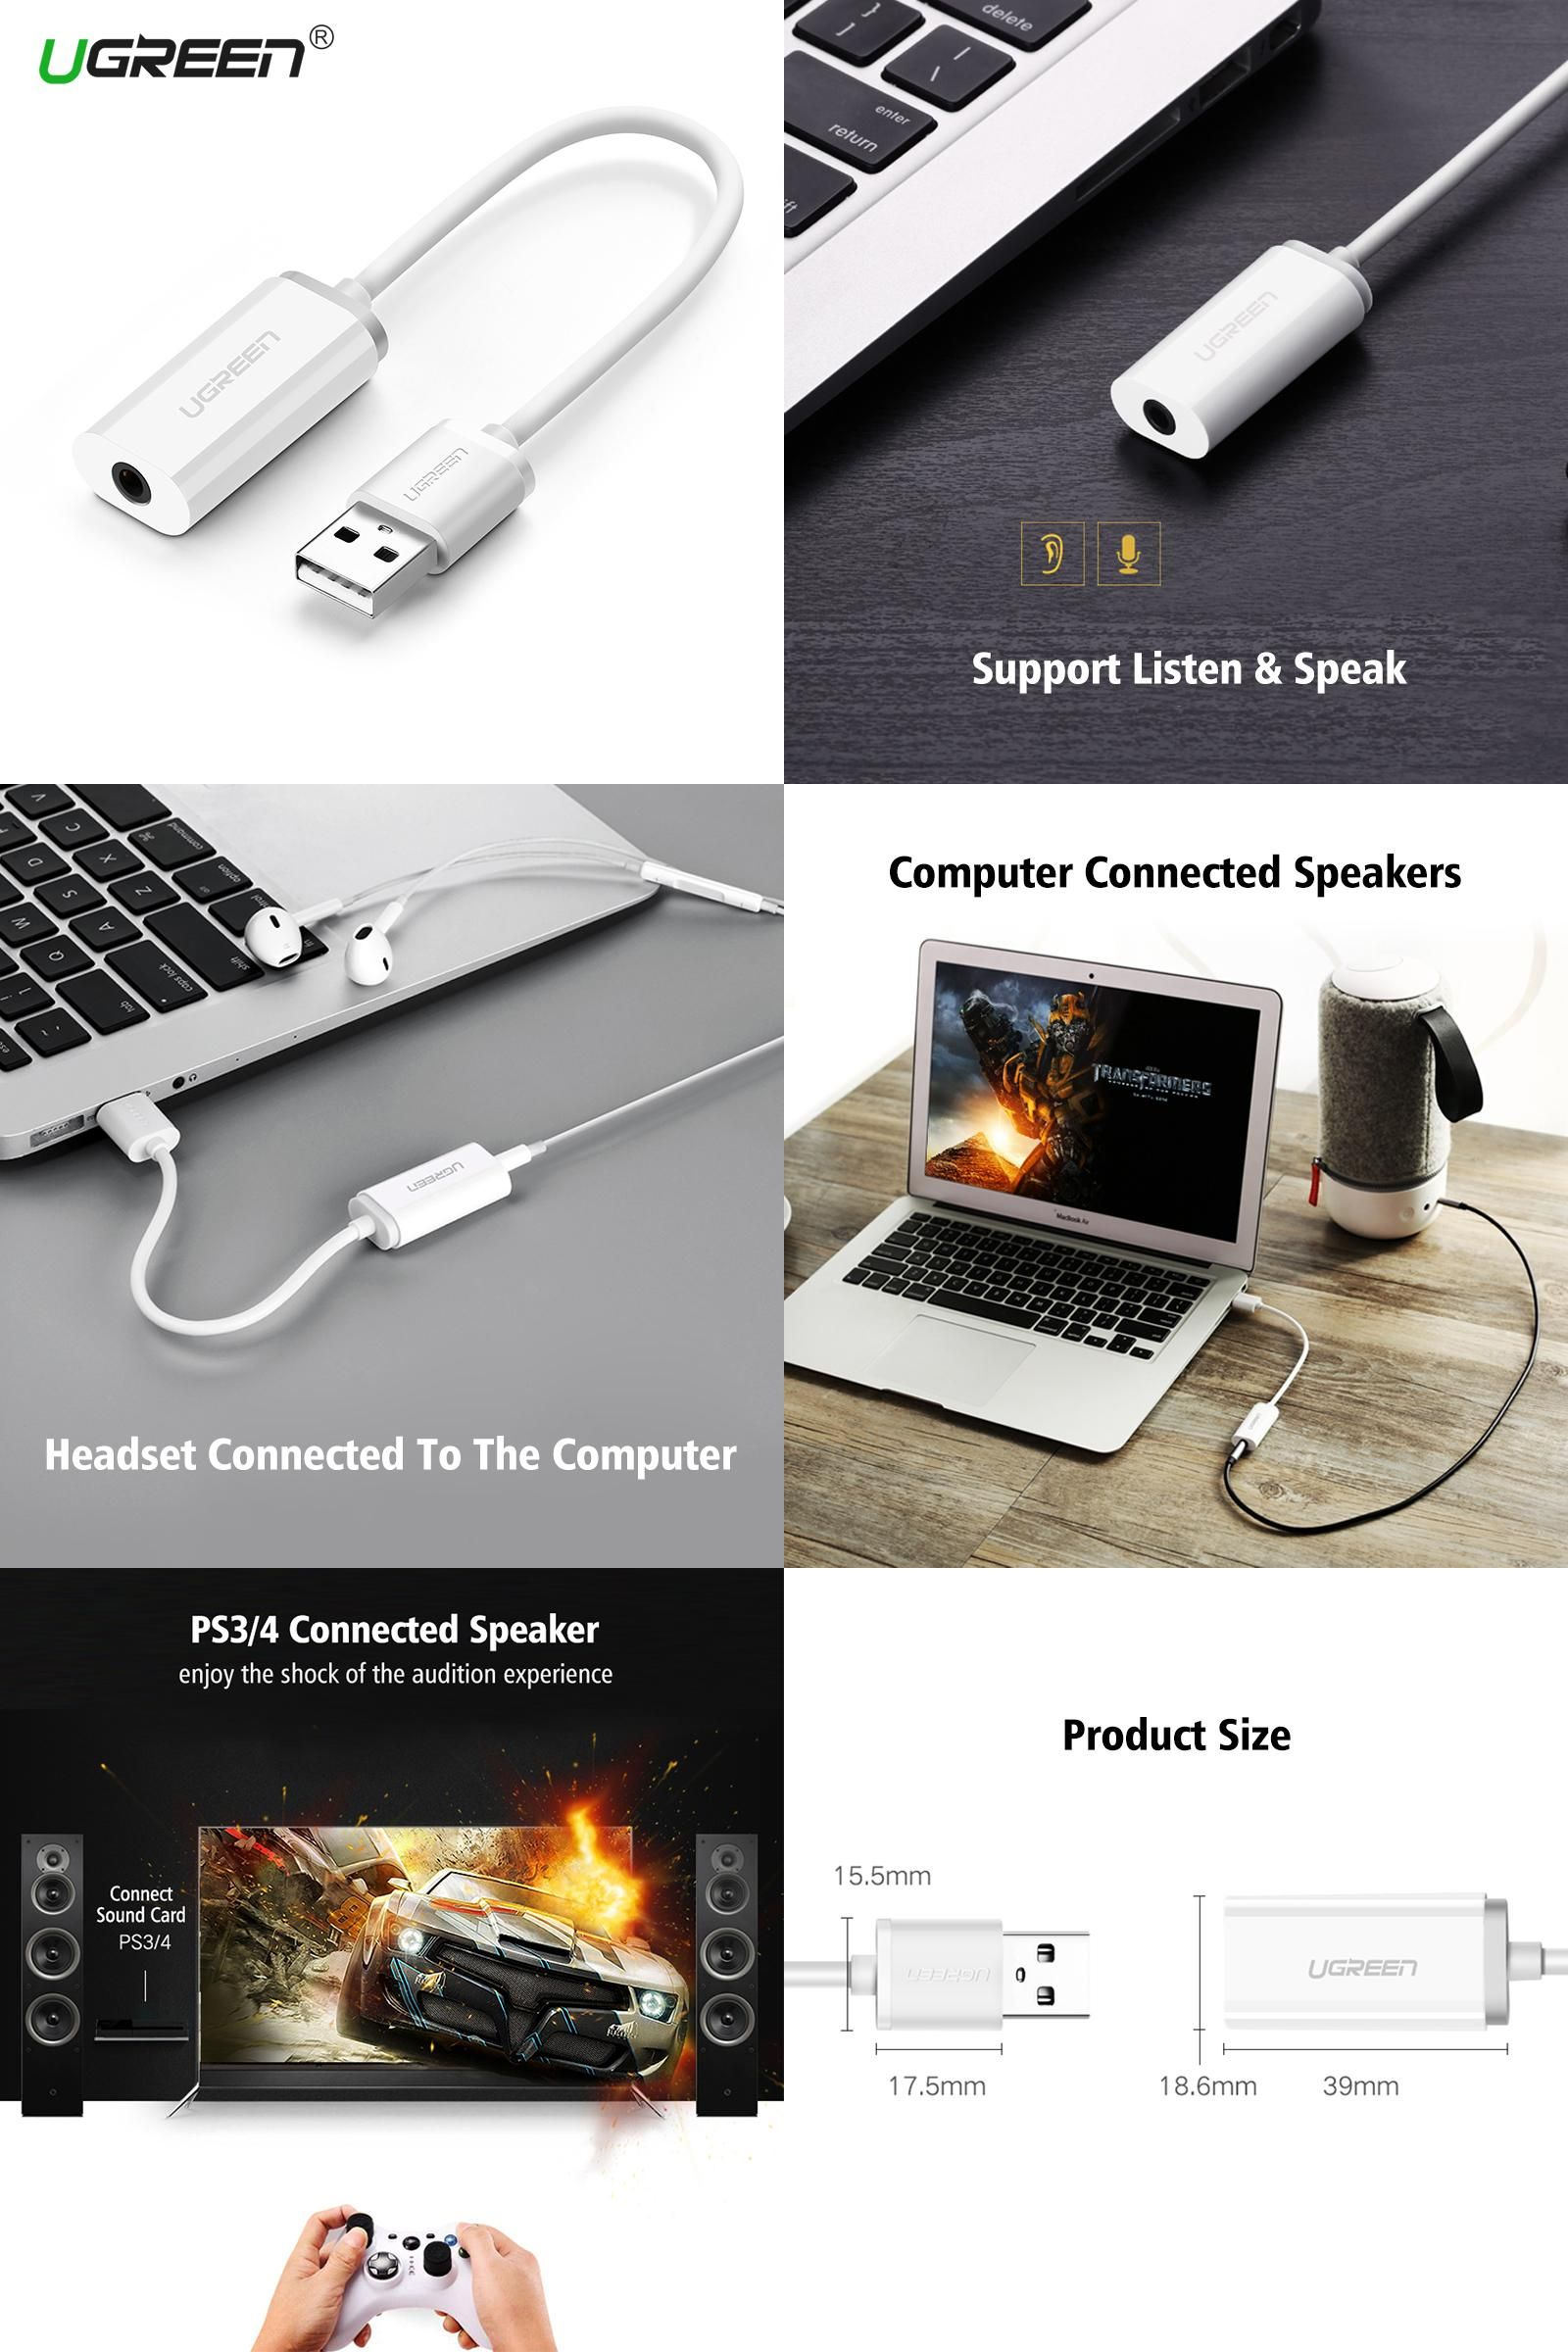 Visit To Buy Ugreen External Usb Audio Sound Card Mic Adapter Speaker 3 5mm Jack Stereo Audio Cable Headset For Ps4 Laptop Ps4 Headset Sound Card Audio Sound